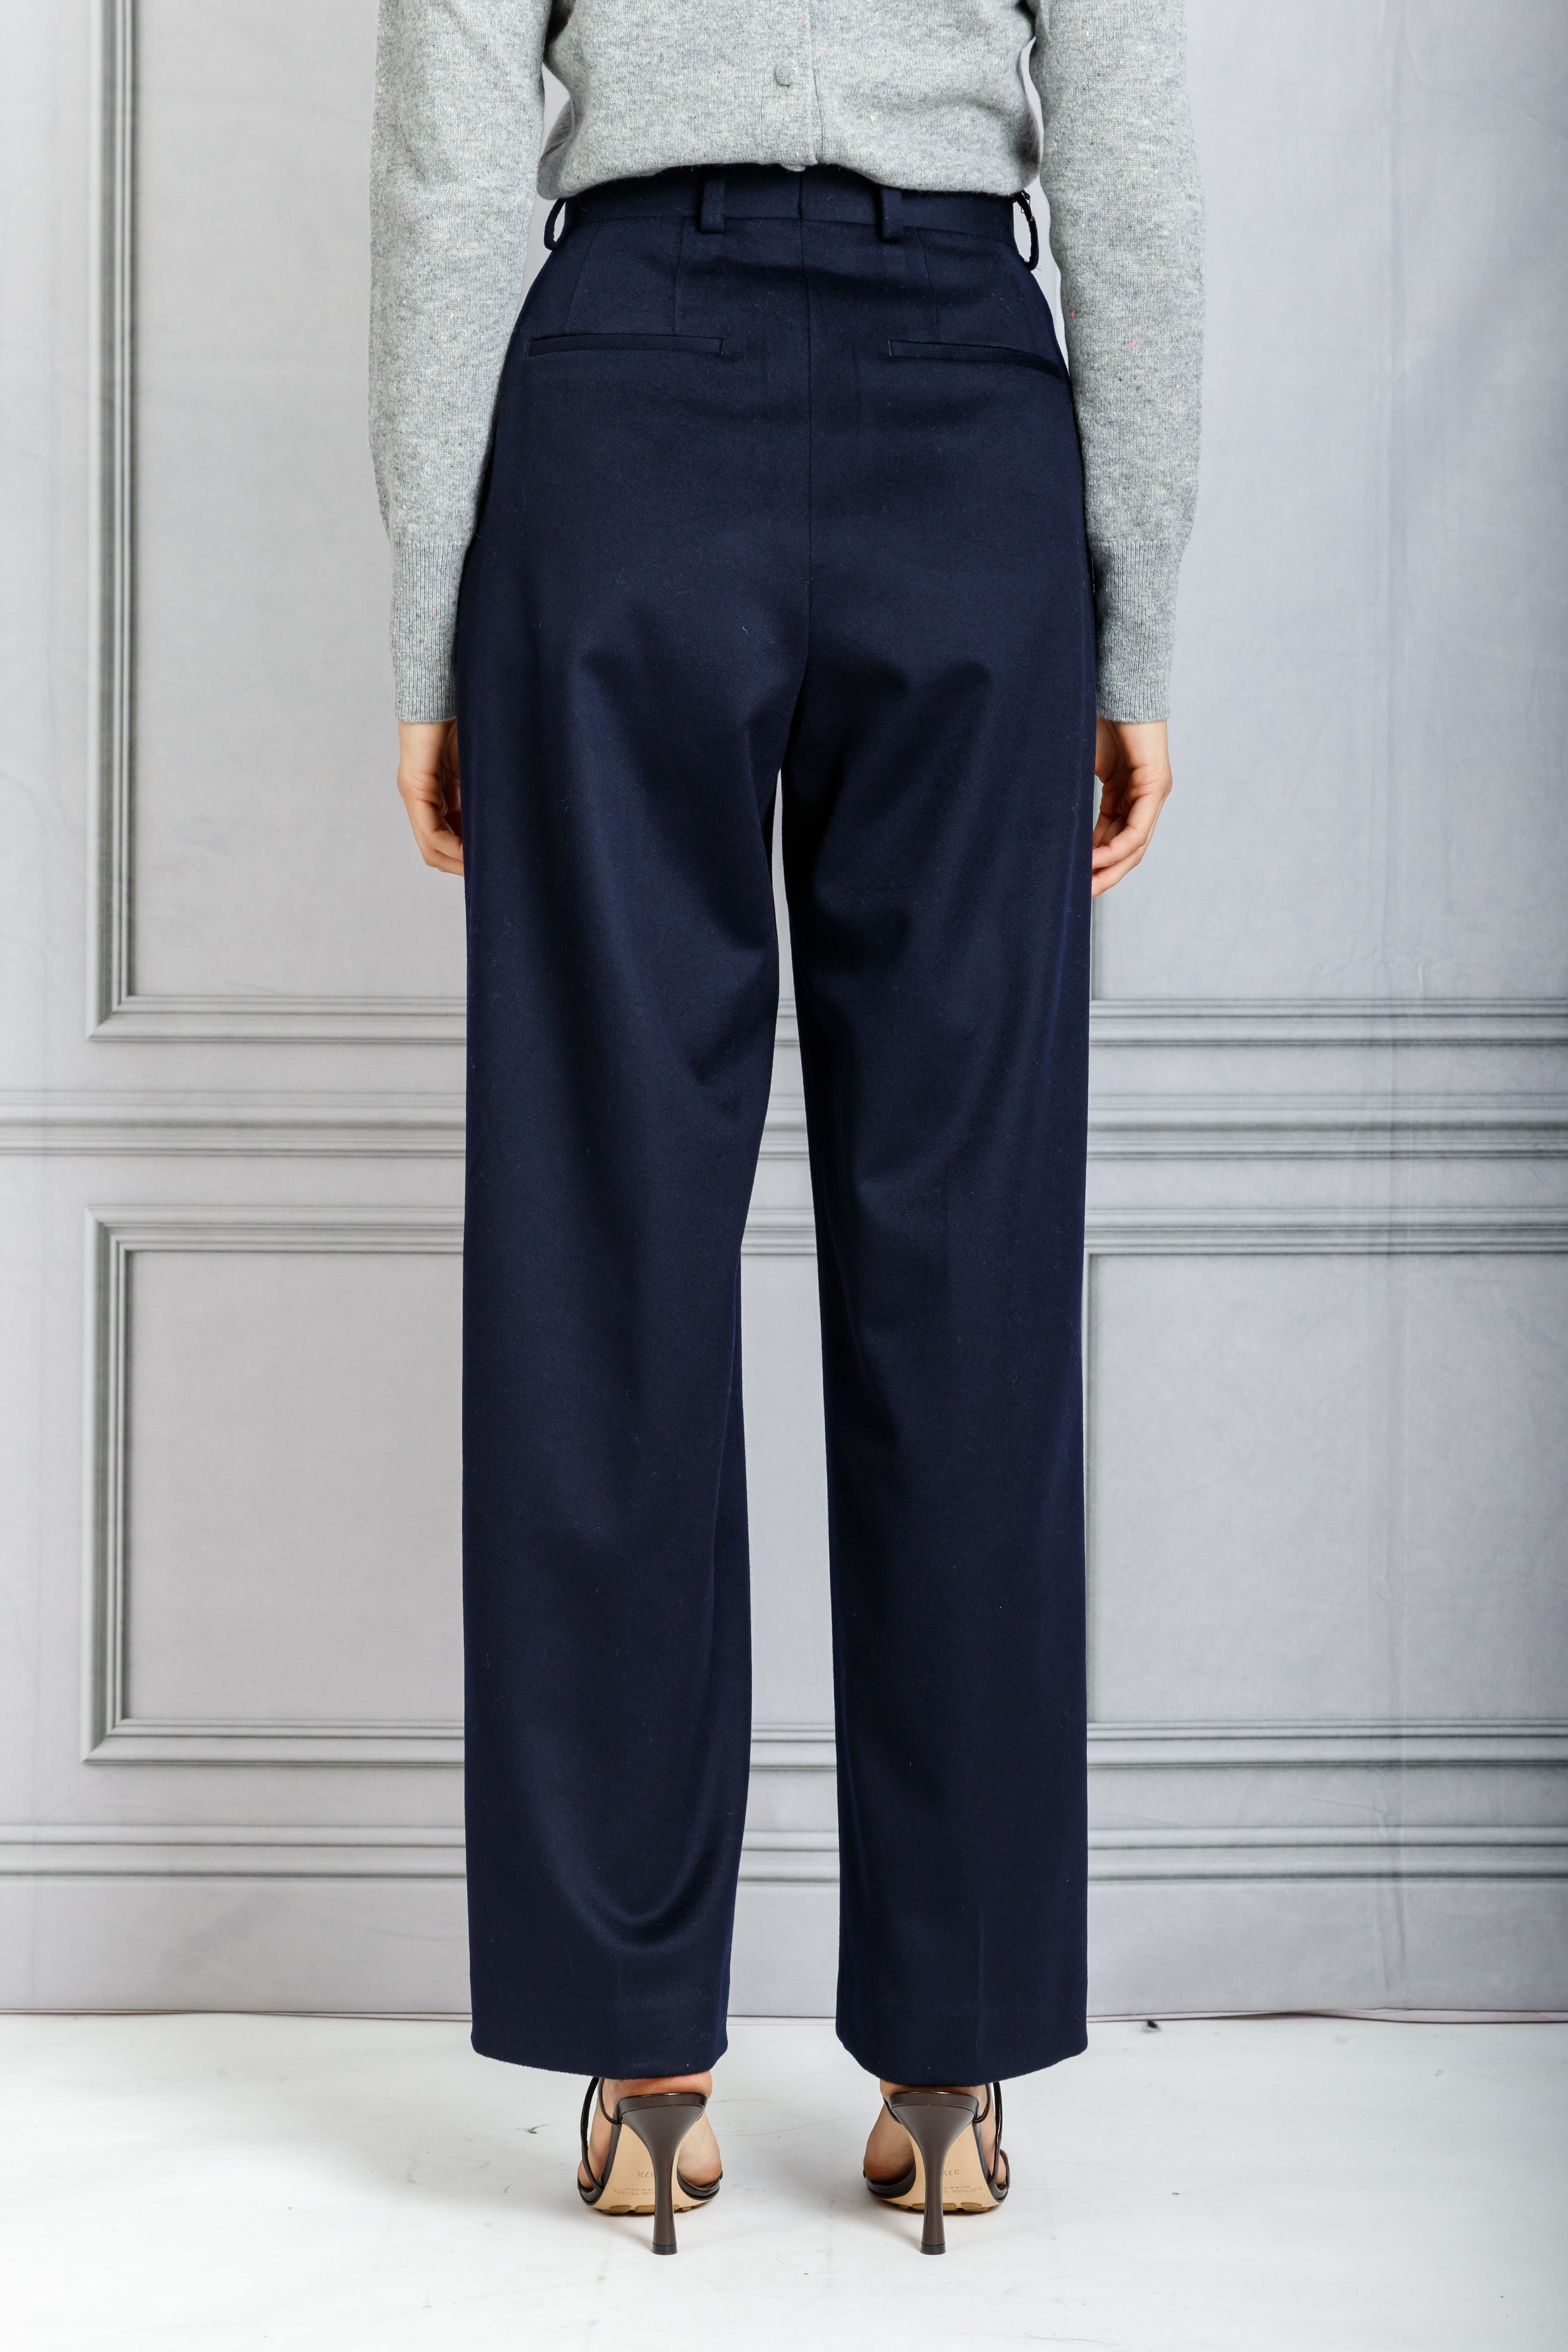 Sophie Front Pleat Full Leg Pant - Navy